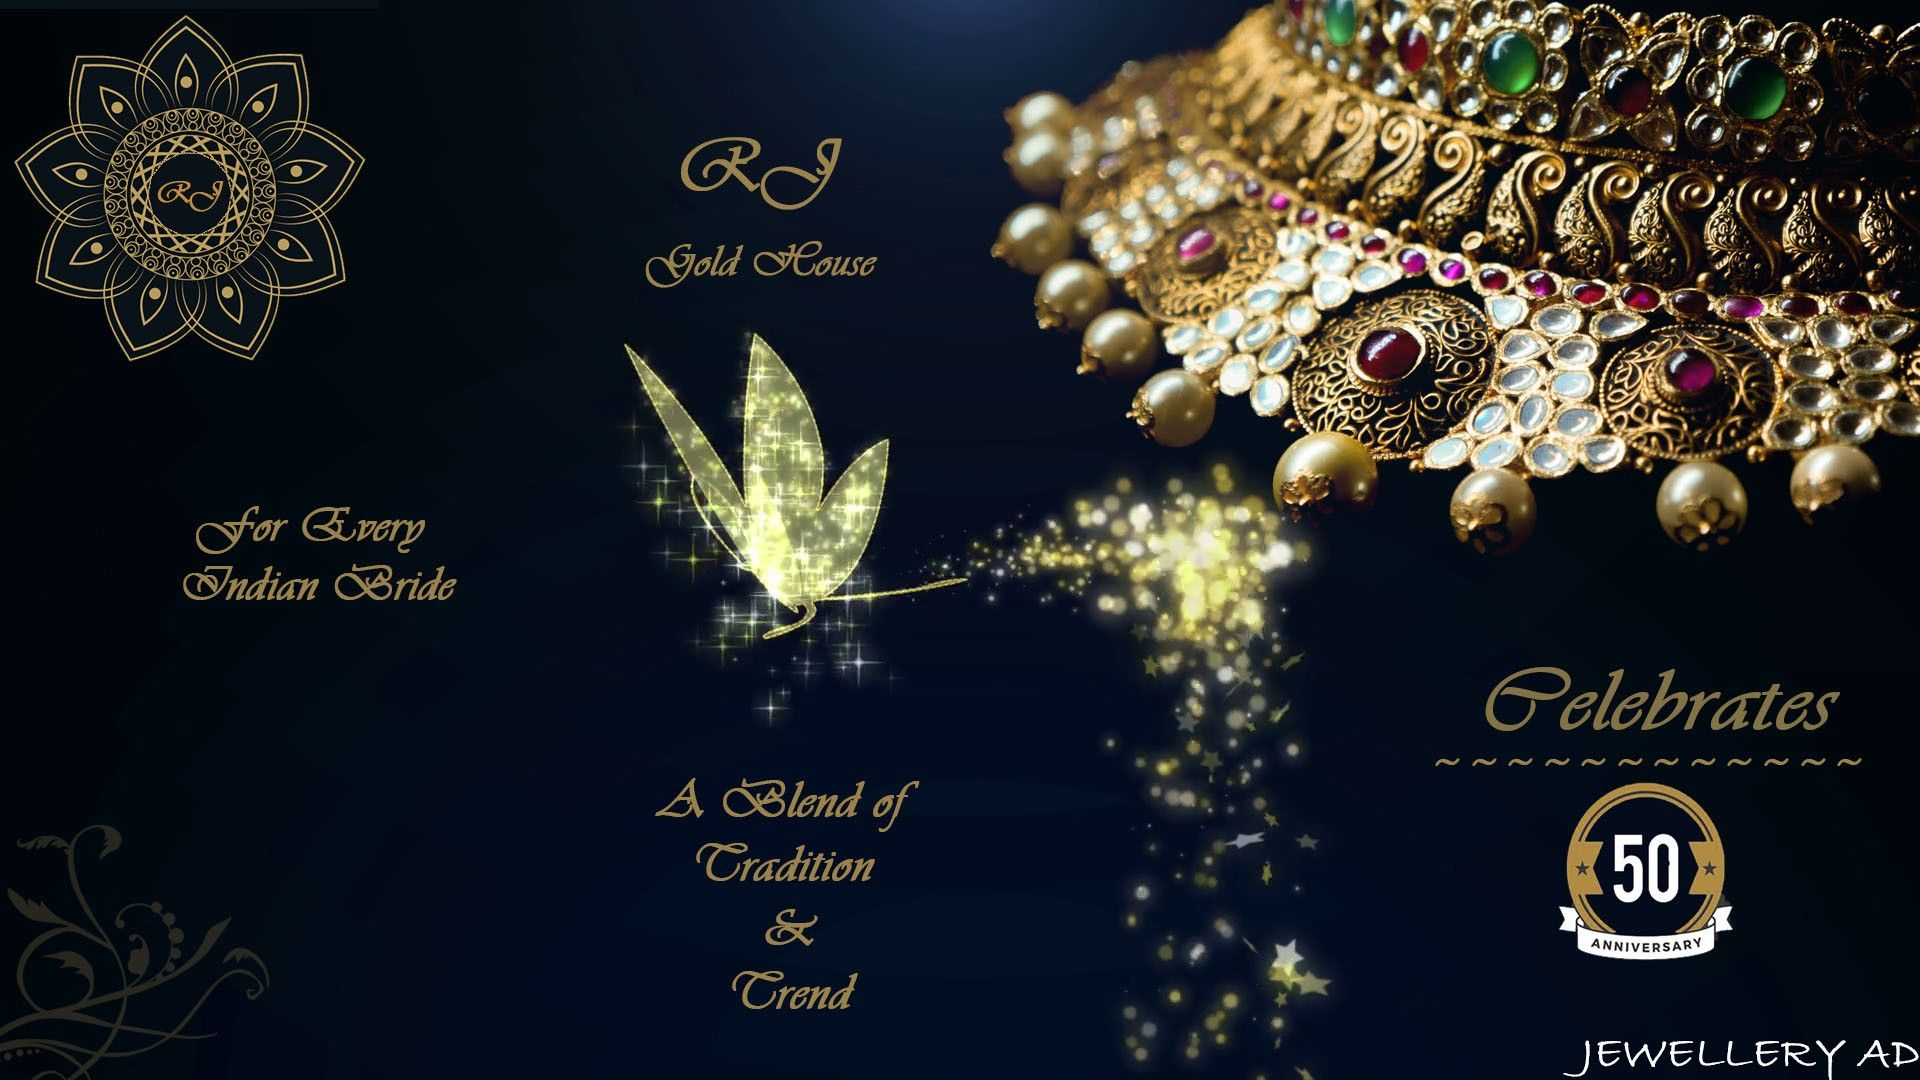 Jewellery Ad Invitation Card Design Invitation Cards